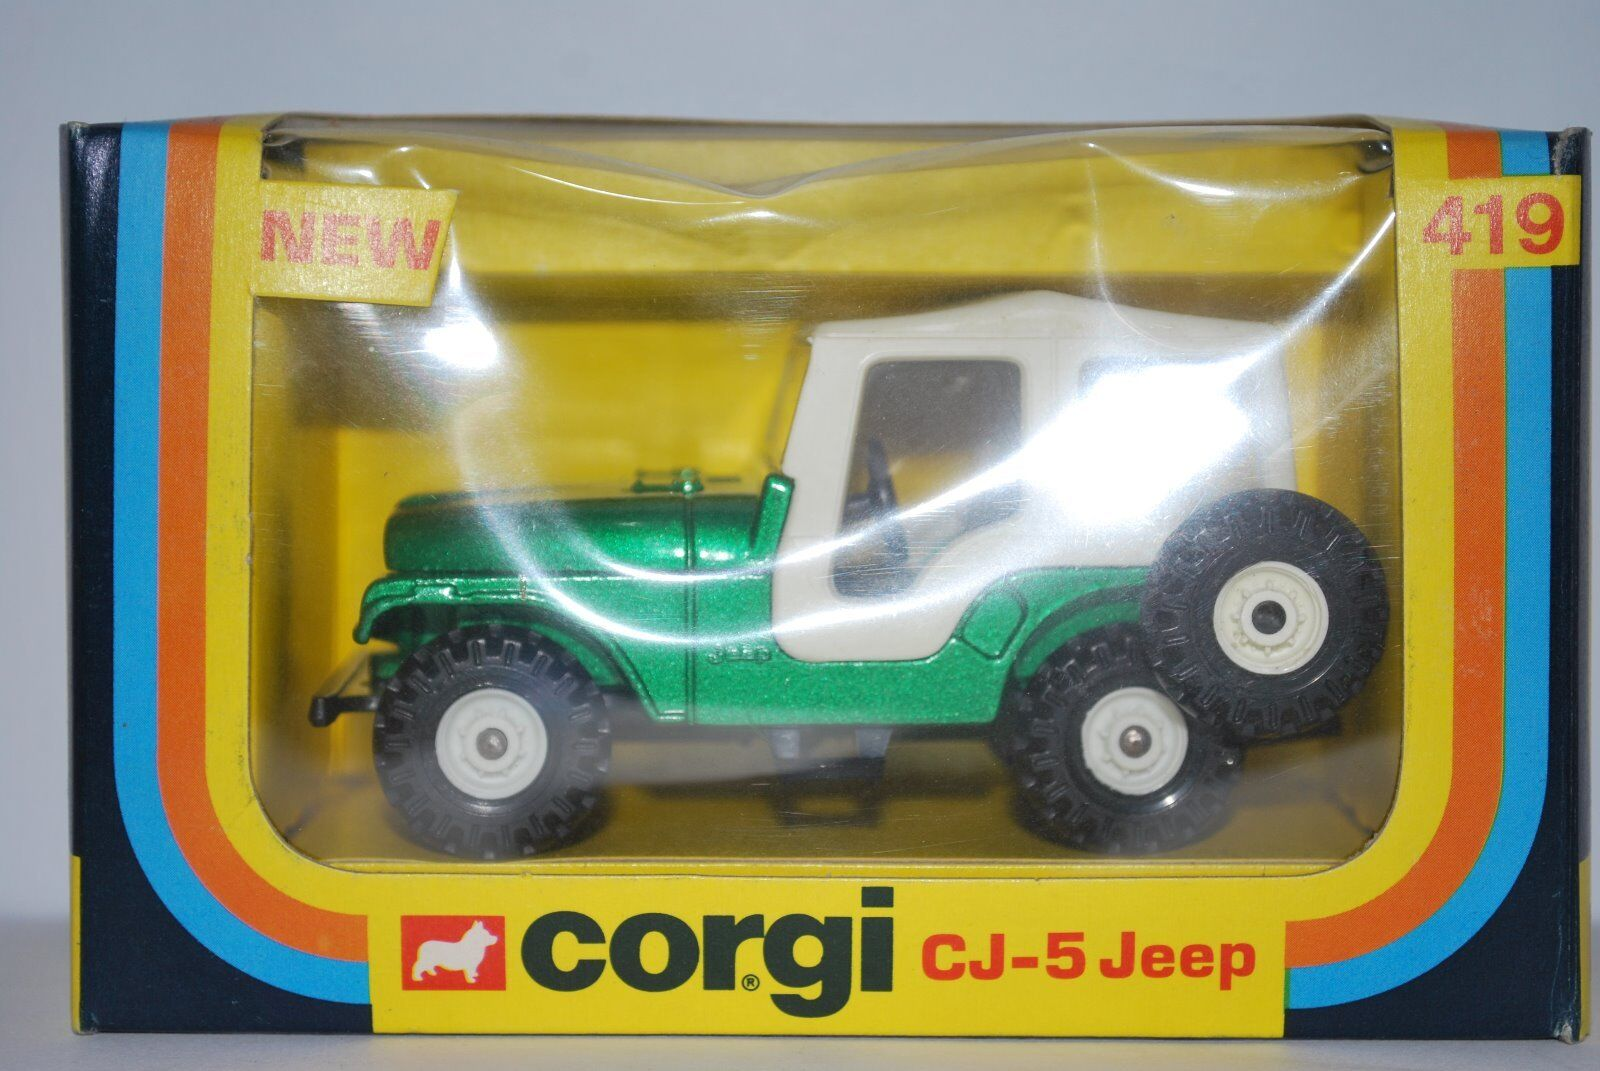 Vintage Corgi CJ-5 Jeep no 419